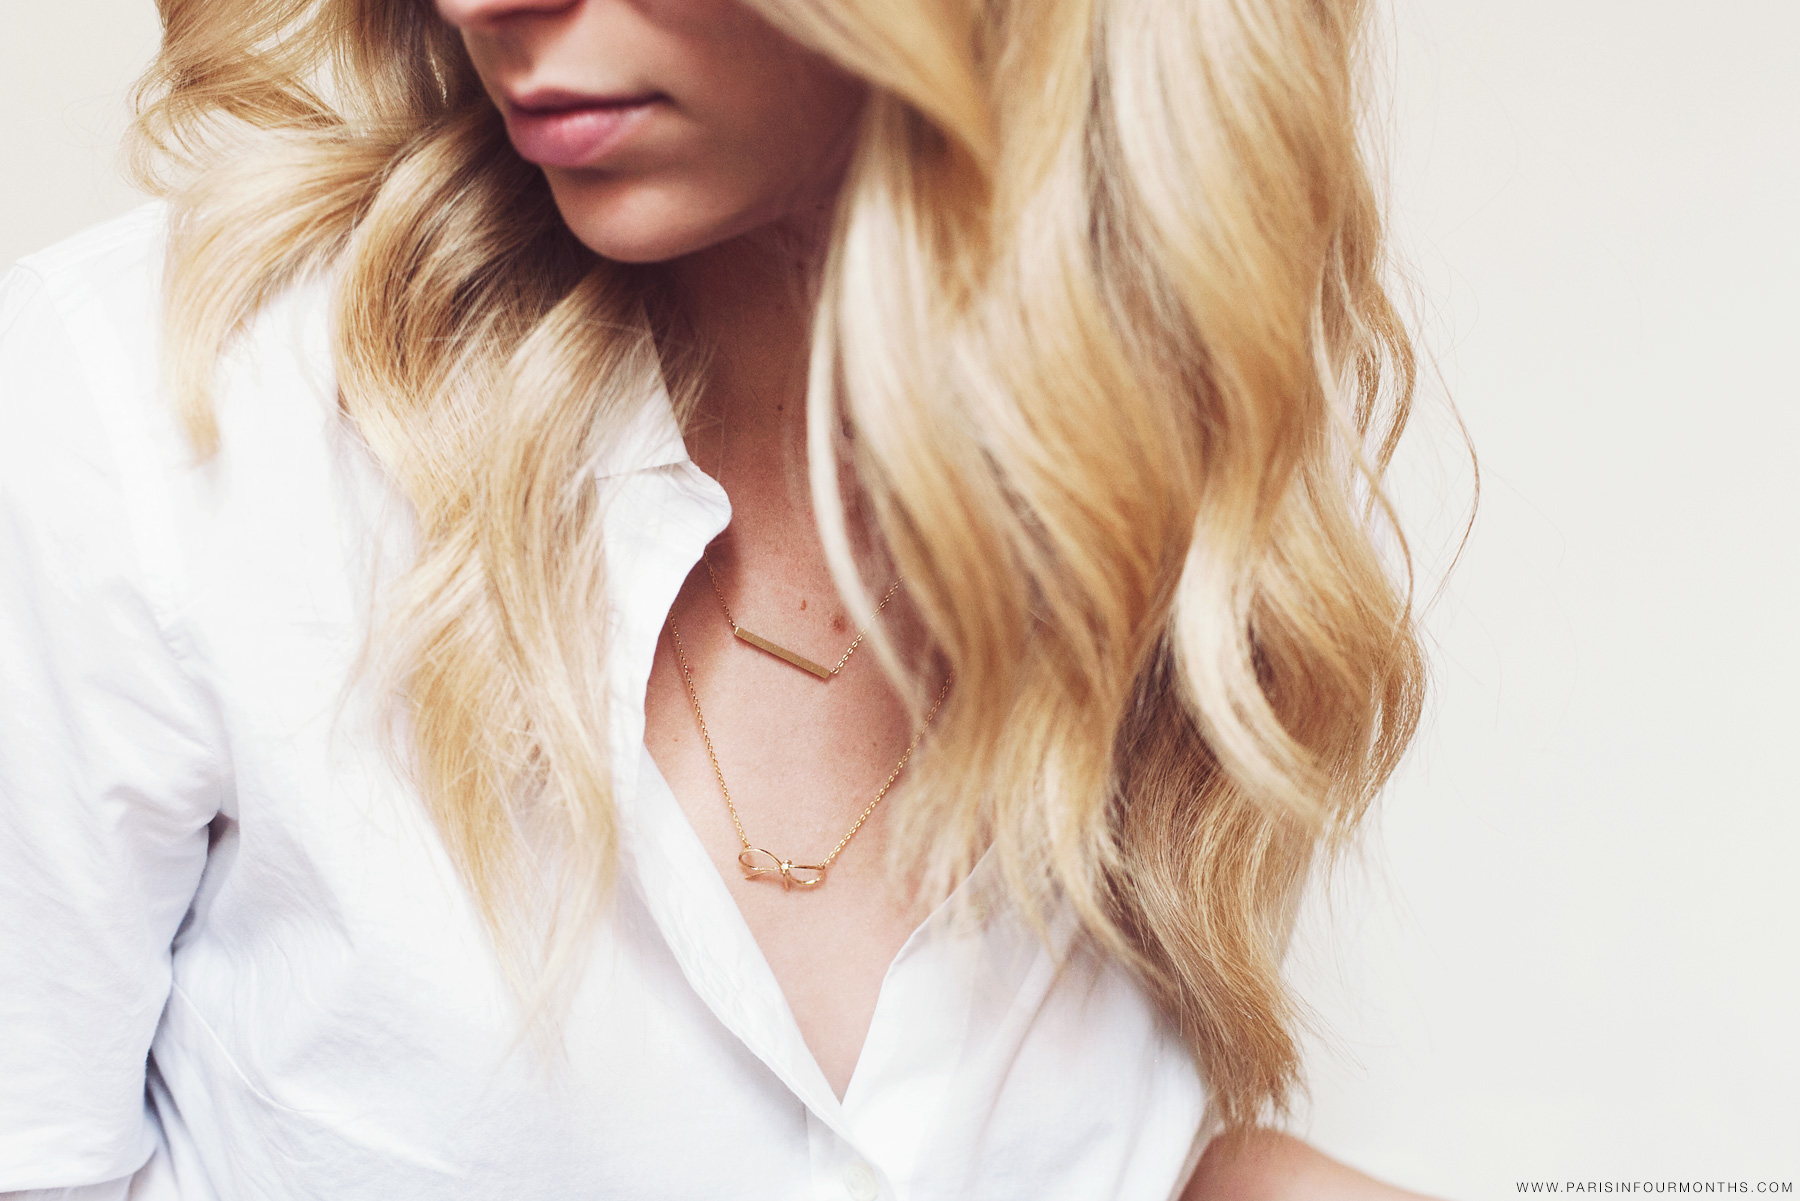 Necklaces by Carin Olsson (Paris in Four Months)